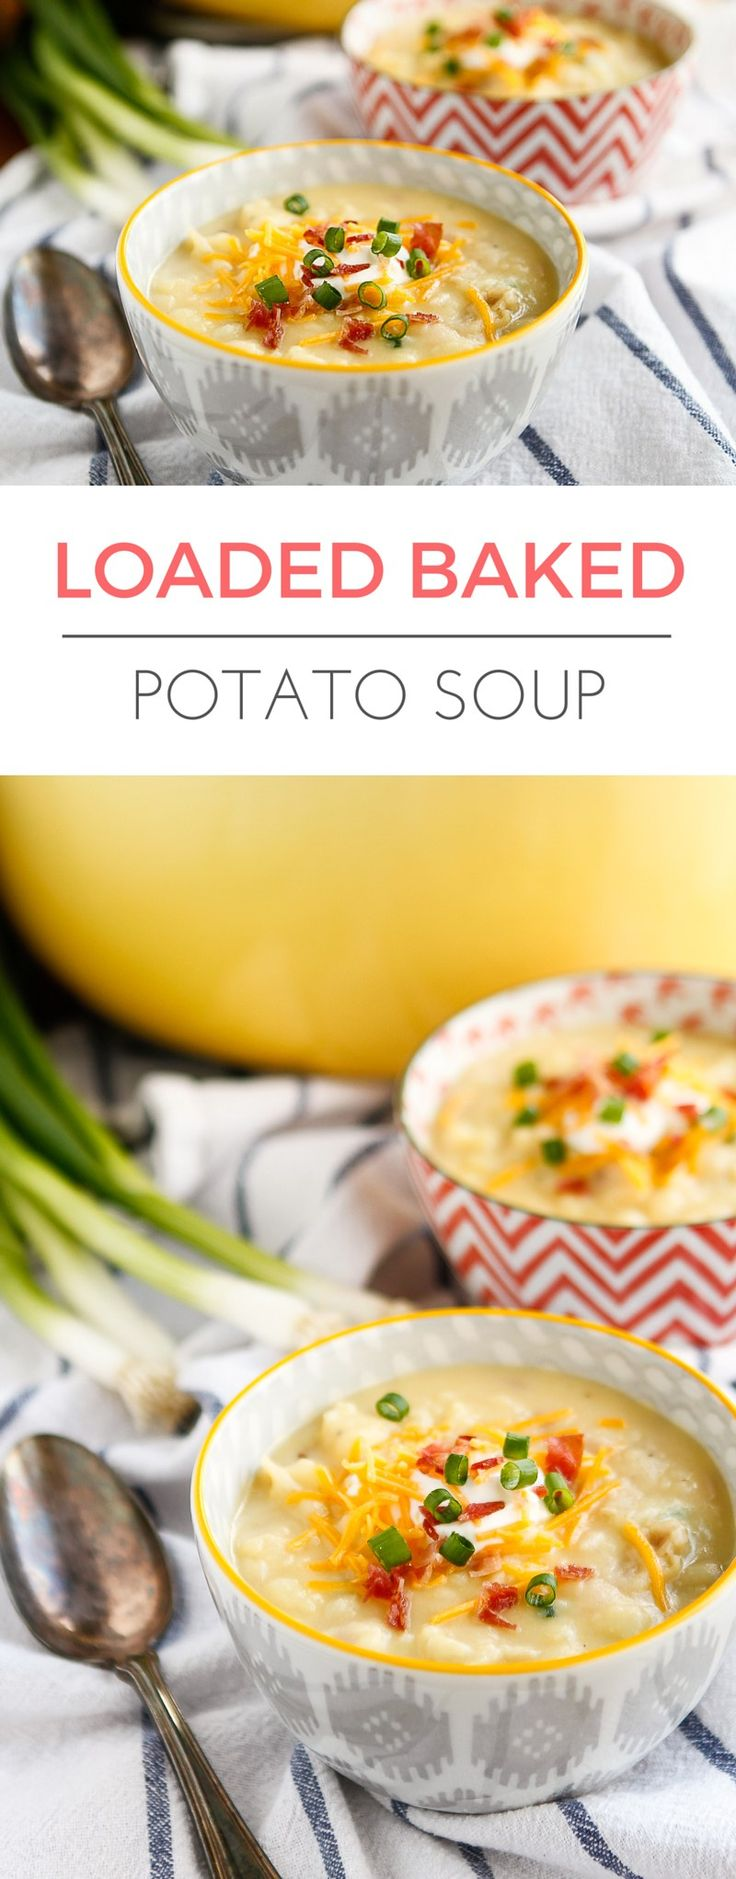 Loaded Baked Potato Soup -- filled with cheddar cheese, bacon, green onions, and sour cream, this simple baked potato soup recipe is full of flavor and can be ready to serve in under 30 minutes! | via @unsophisticook on unsophisticook.com